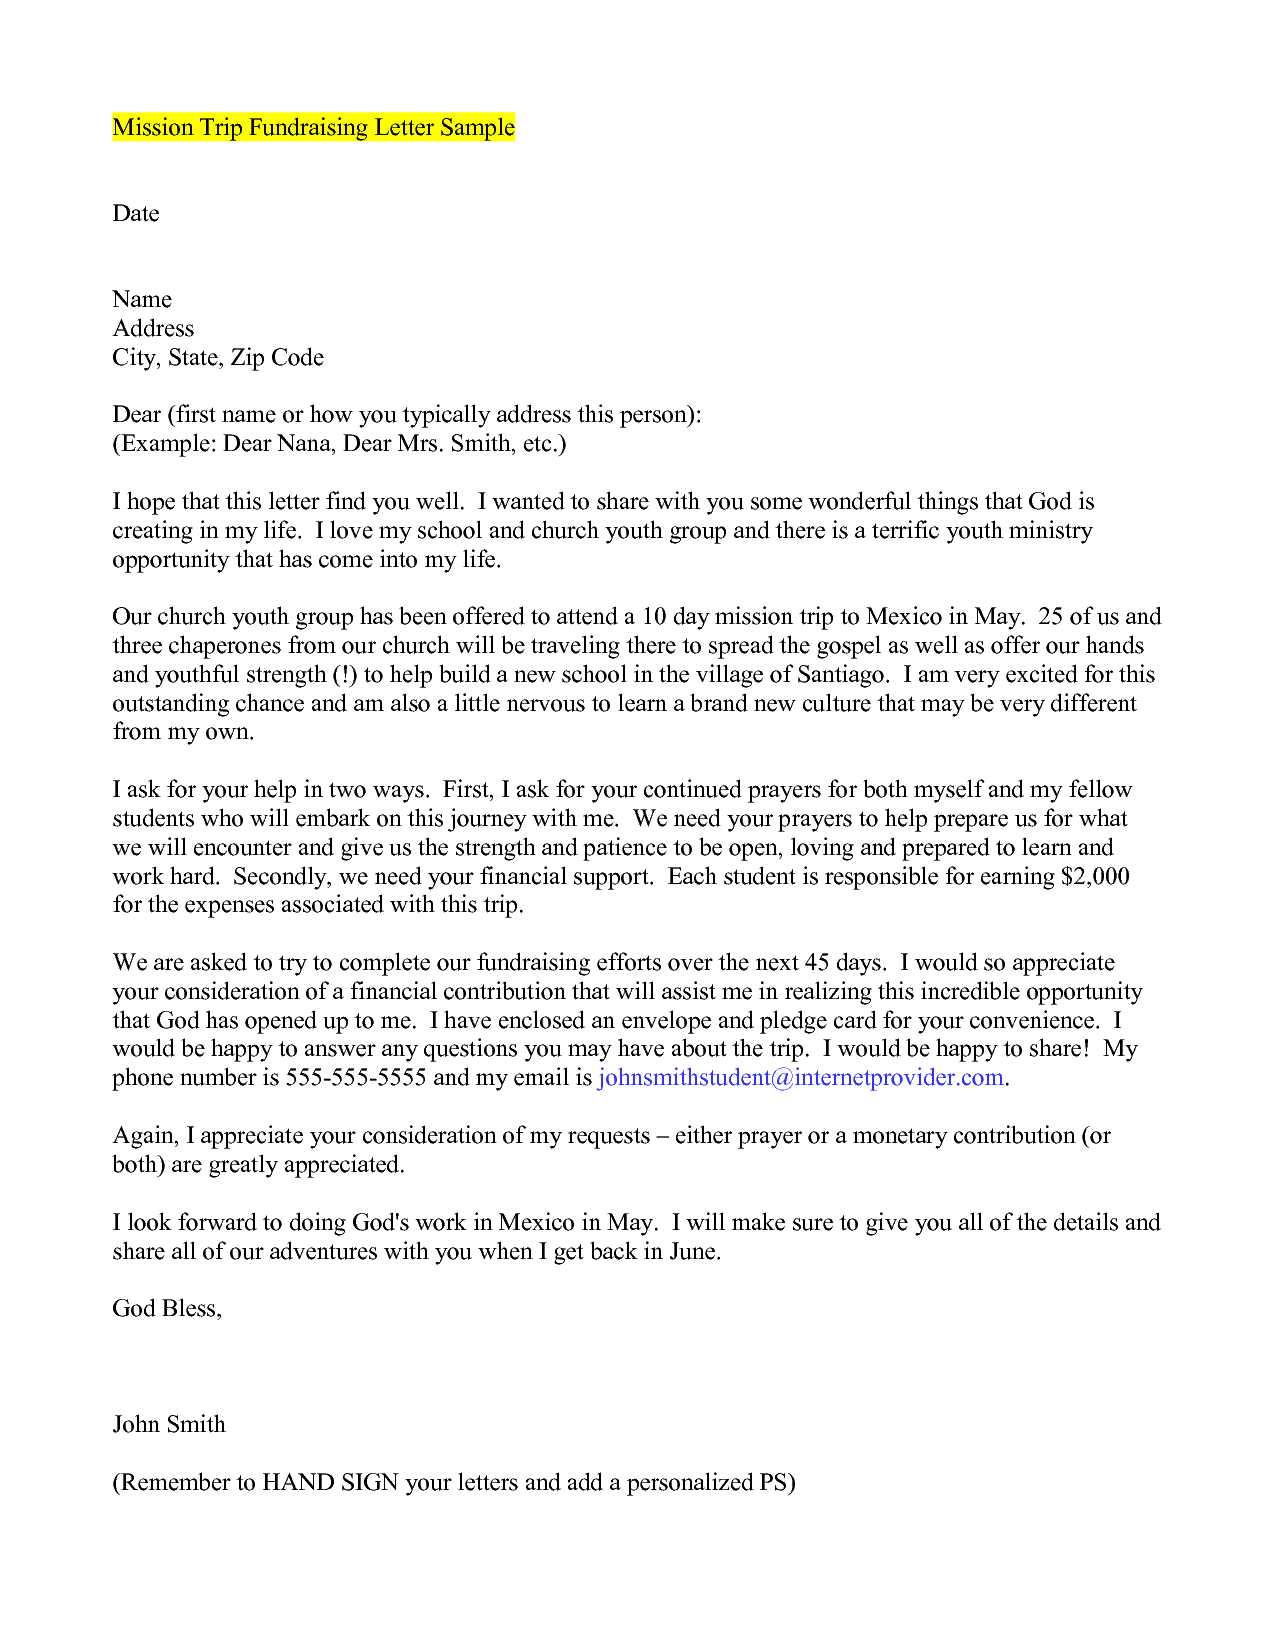 Mission Trip Donation Letter Template - Early Childhood Philosophy Statement Examples as Well as Mission